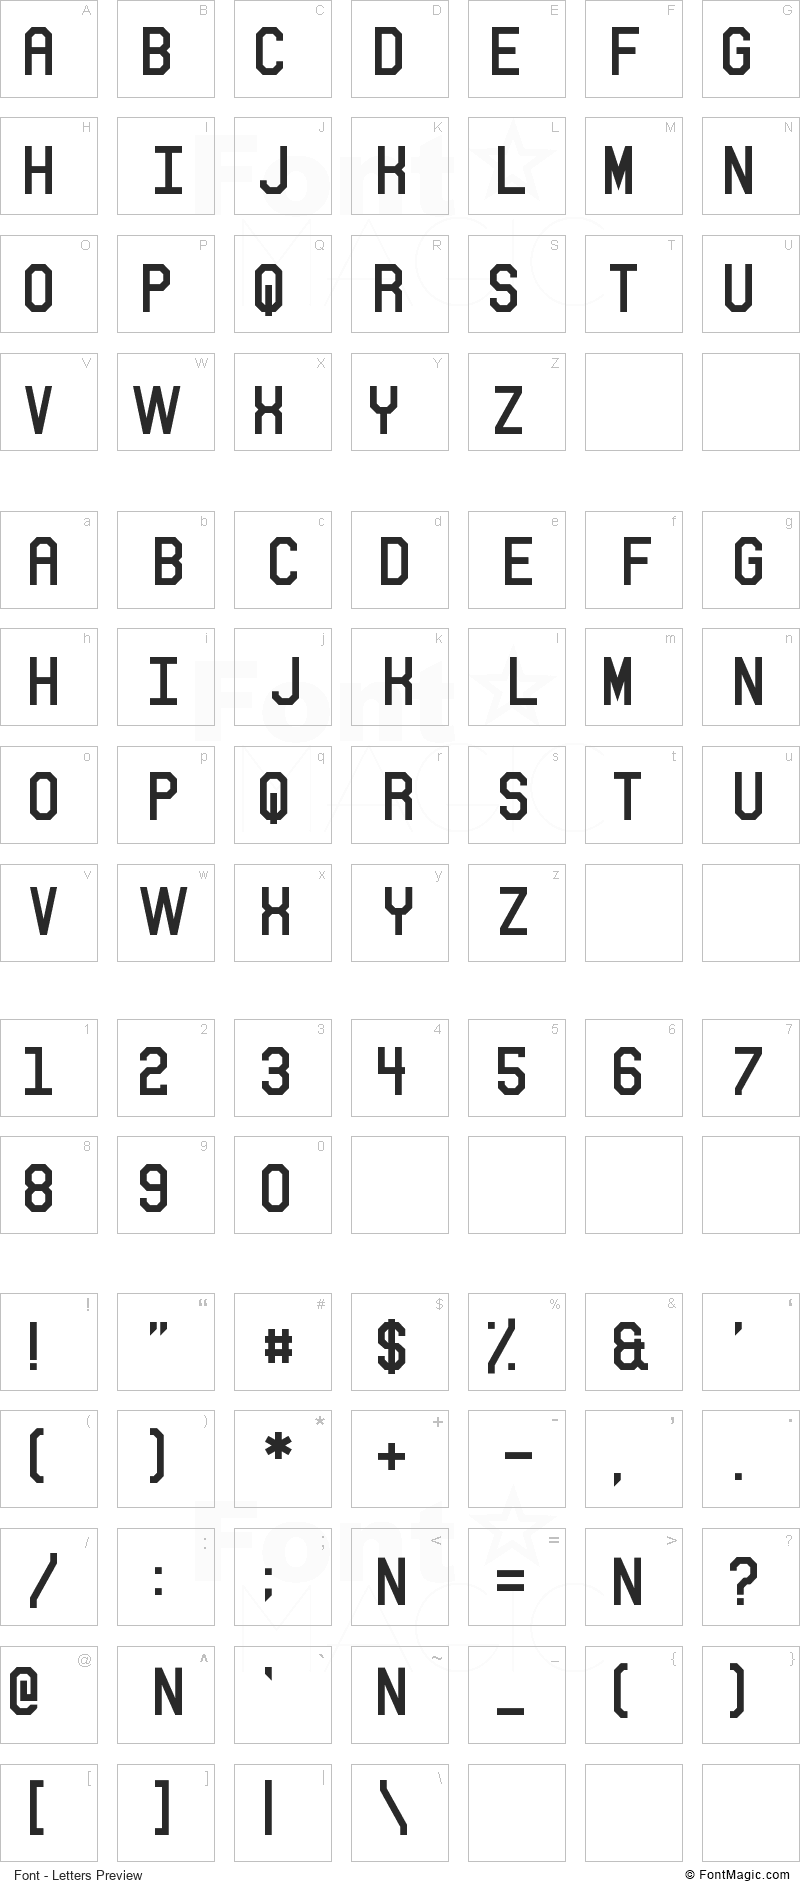 Sitdown Font - All Latters Preview Chart